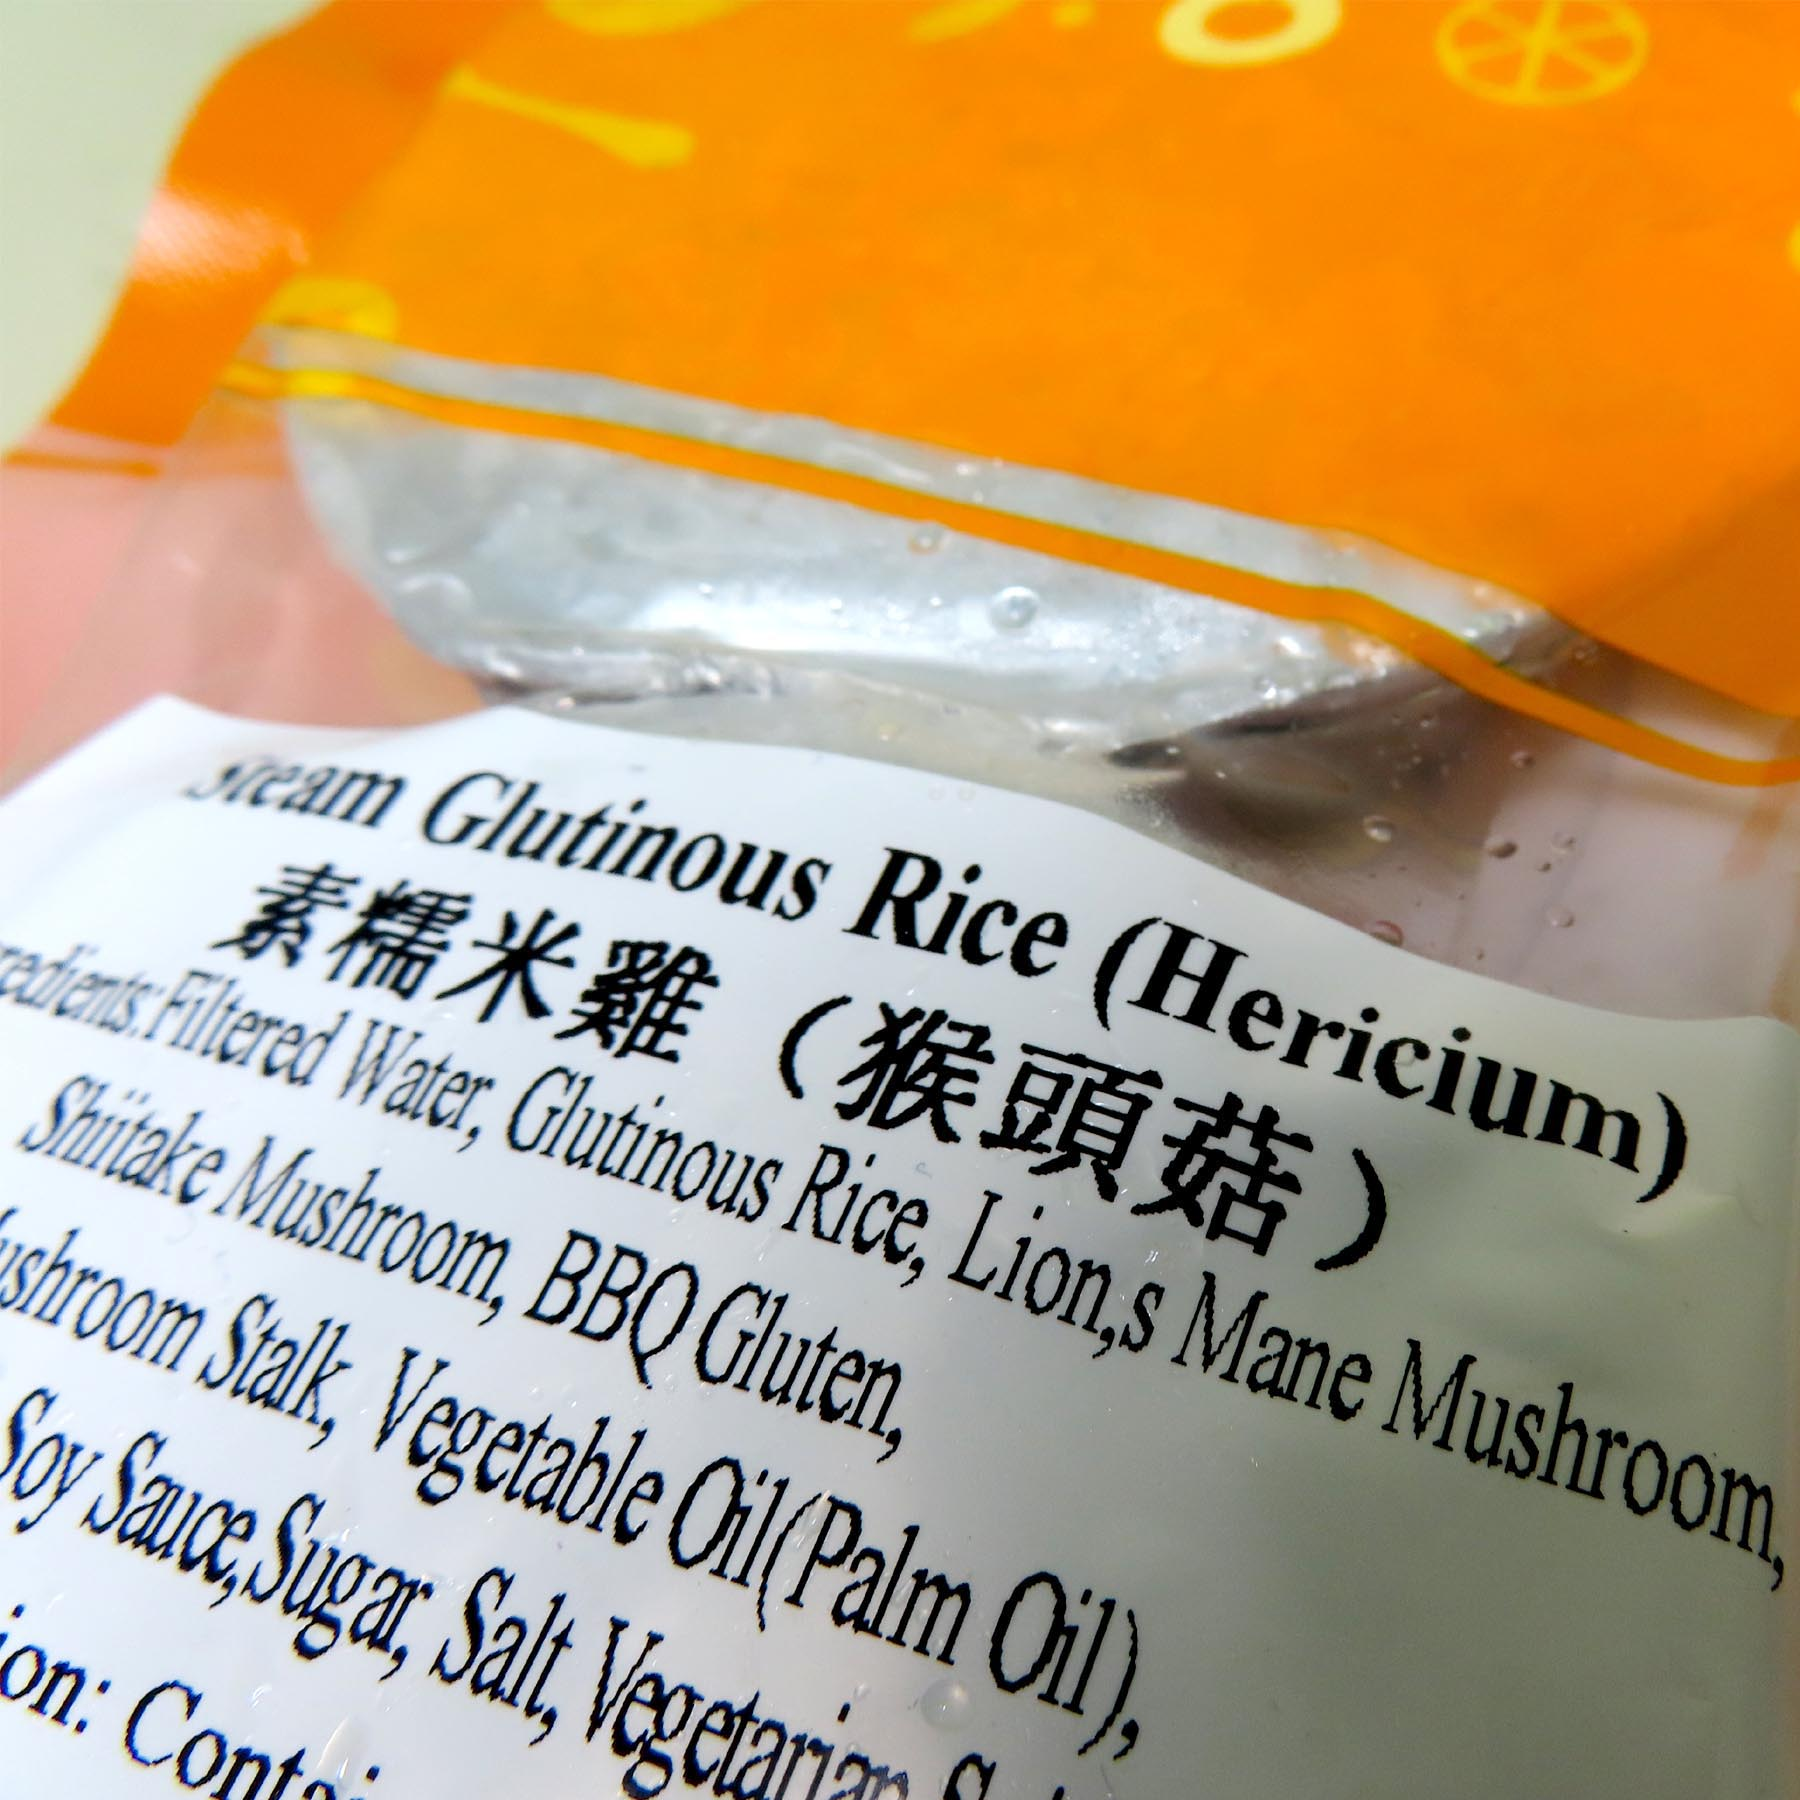 Image Friendly FV Foods Hericium Glutinous Rice 善缘猴头菇糯米鸡